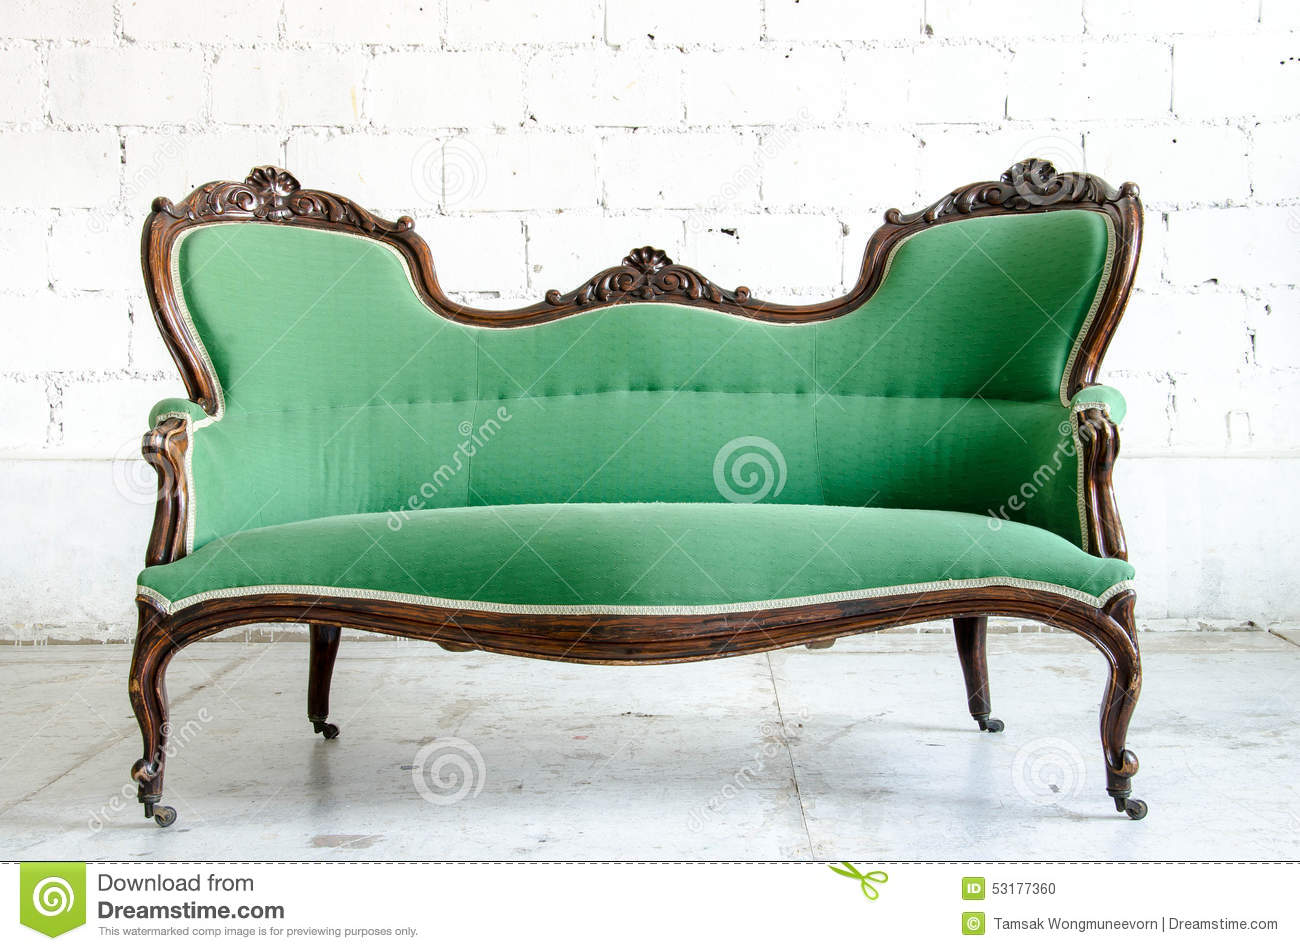 Vintage Couch Luxury Green Vintage Style Armchair Sofa Couch In Vintage Room